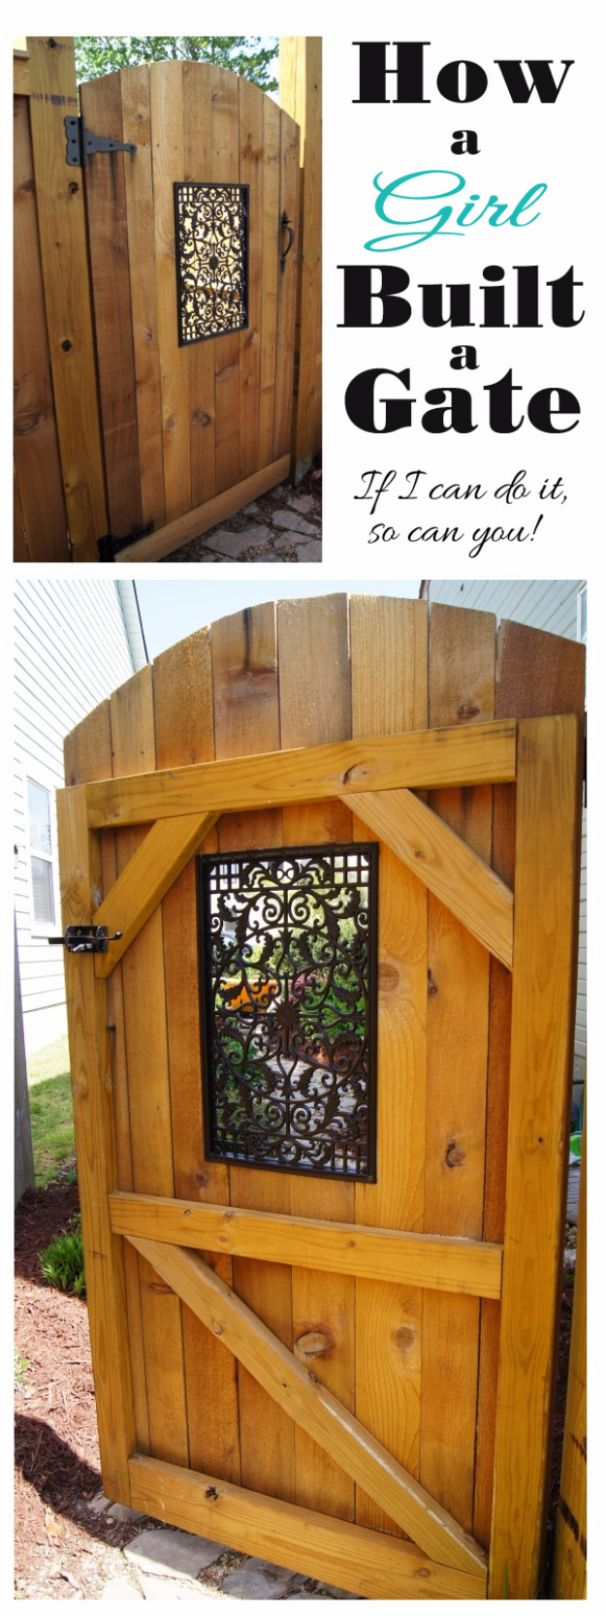 10 DIY Fences and Gates To Showcase Your Yard